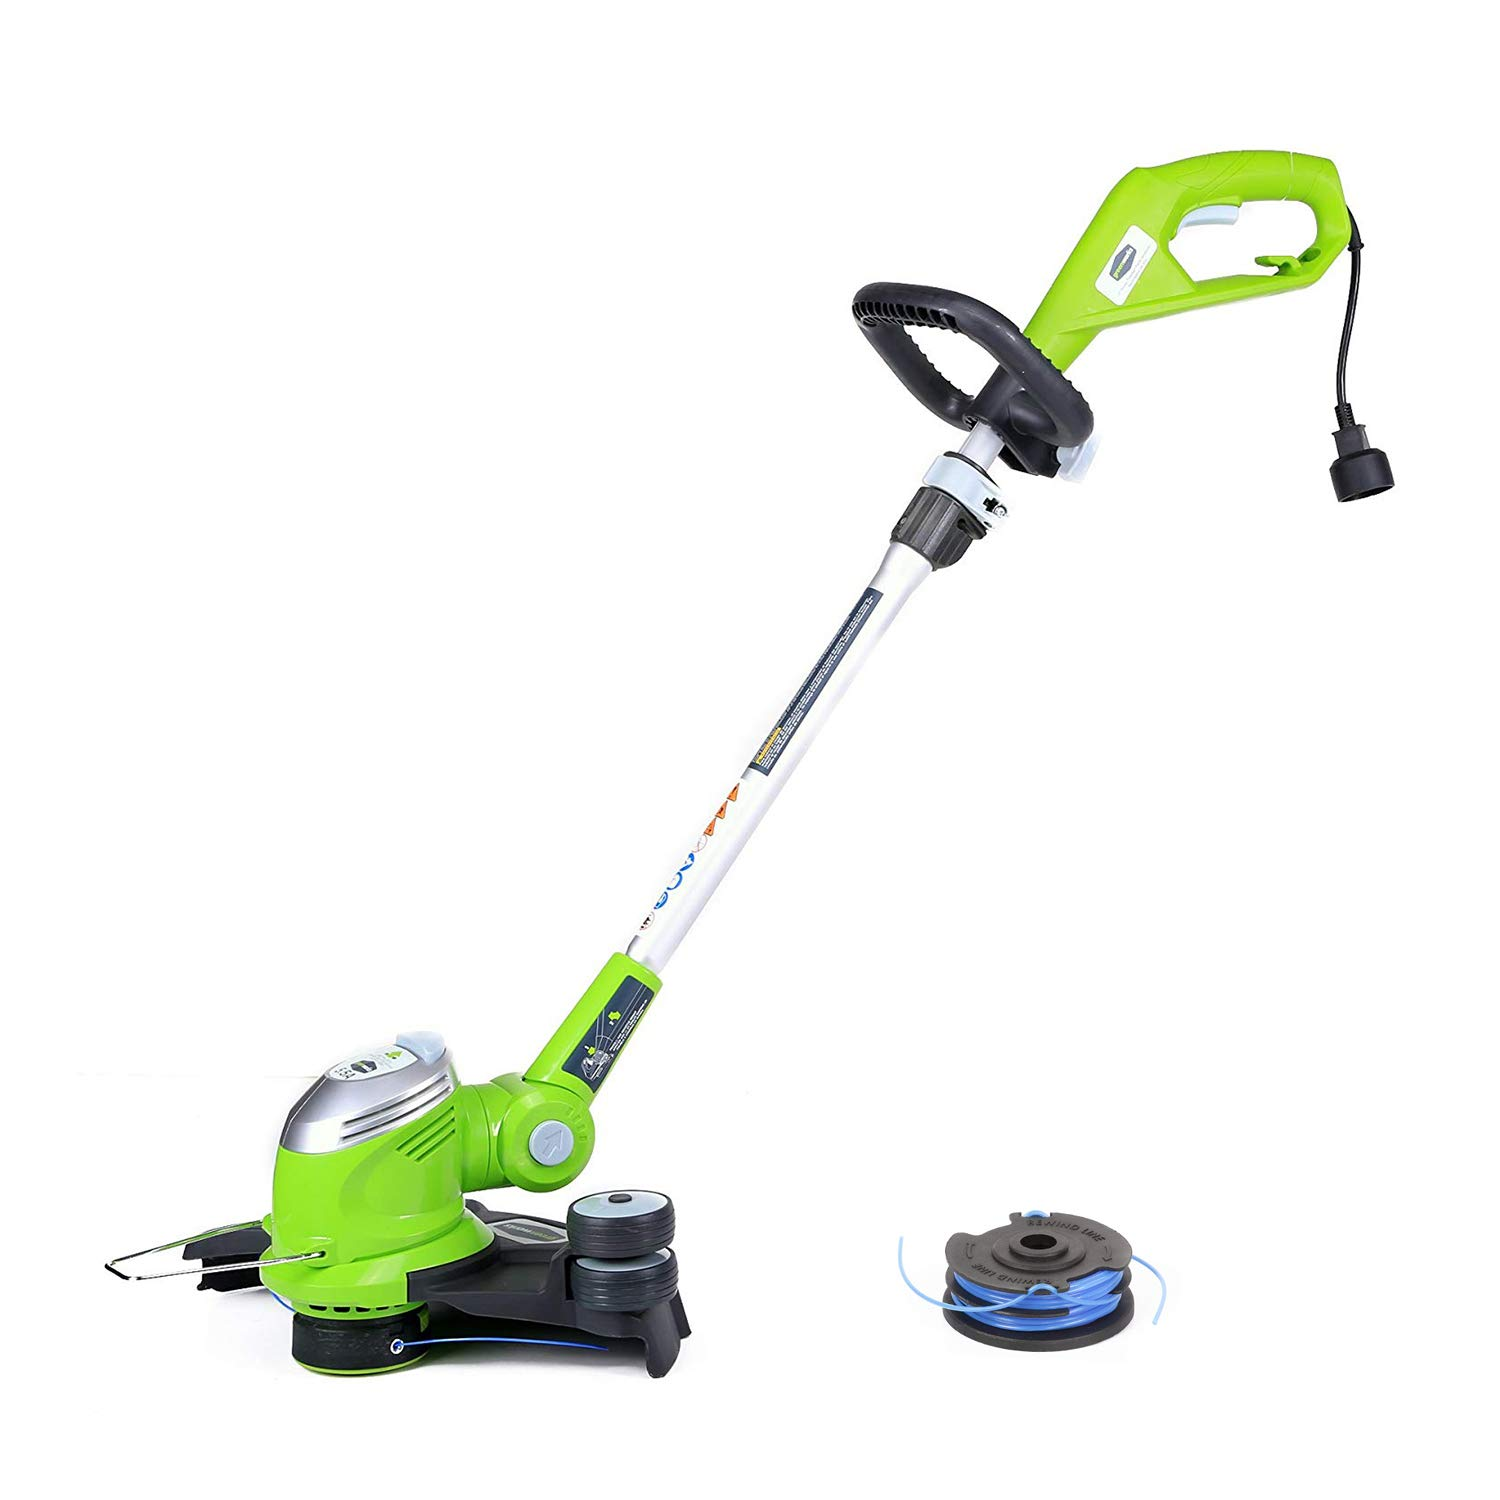 GreenWorks 5.5Amp 15-Inch Corded String Trimmer with Trimmer Line 21272